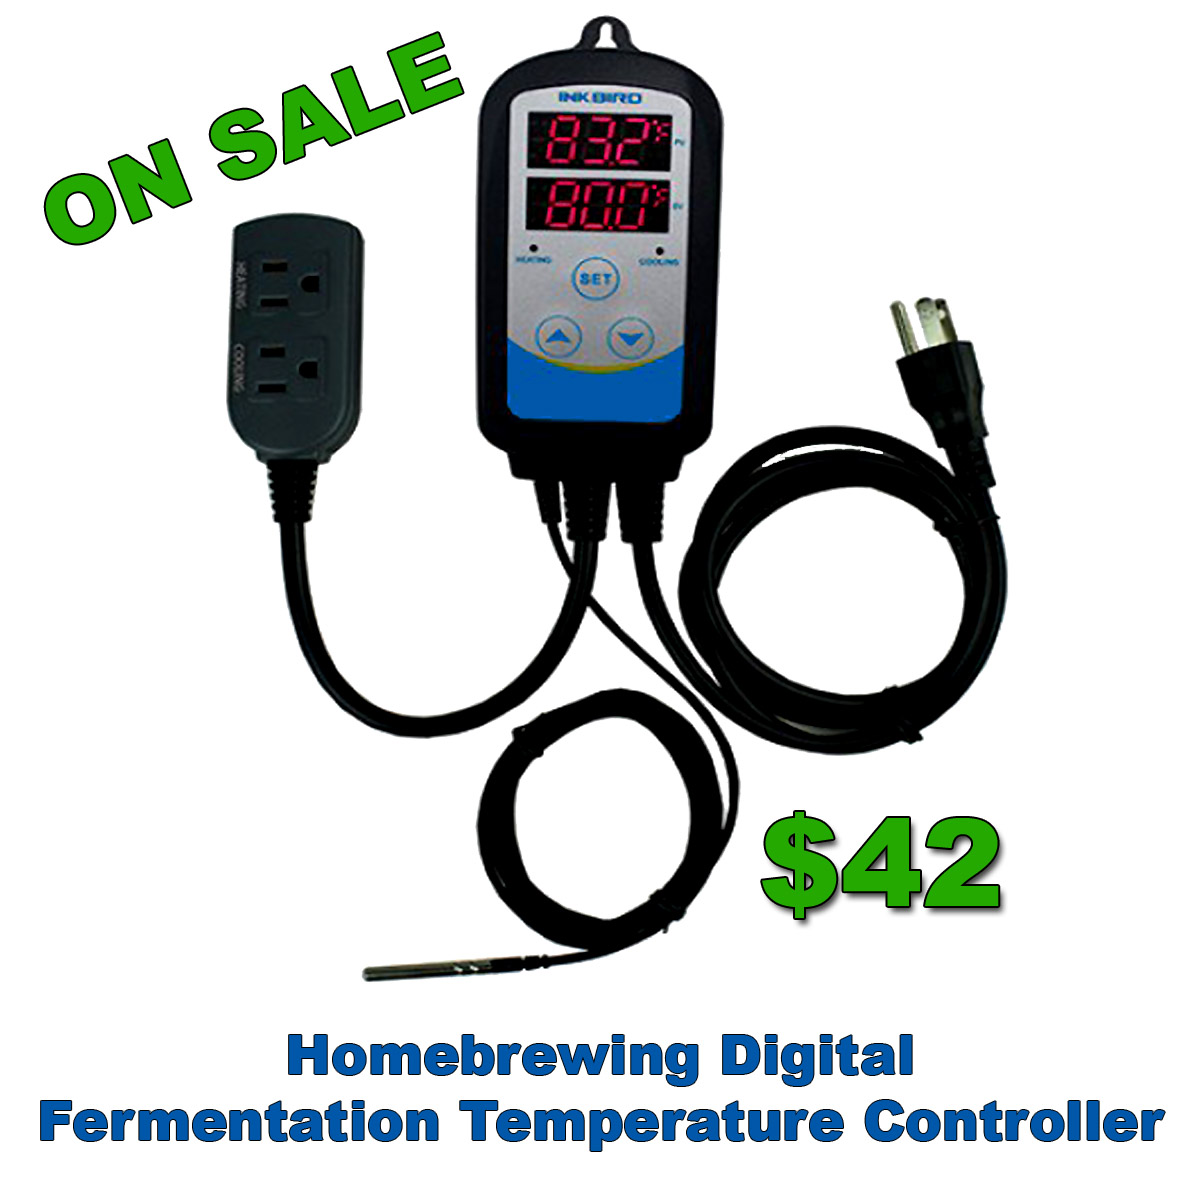 Homebrewing Digital Fermentation Temperature Controller On Sale Promo Codes